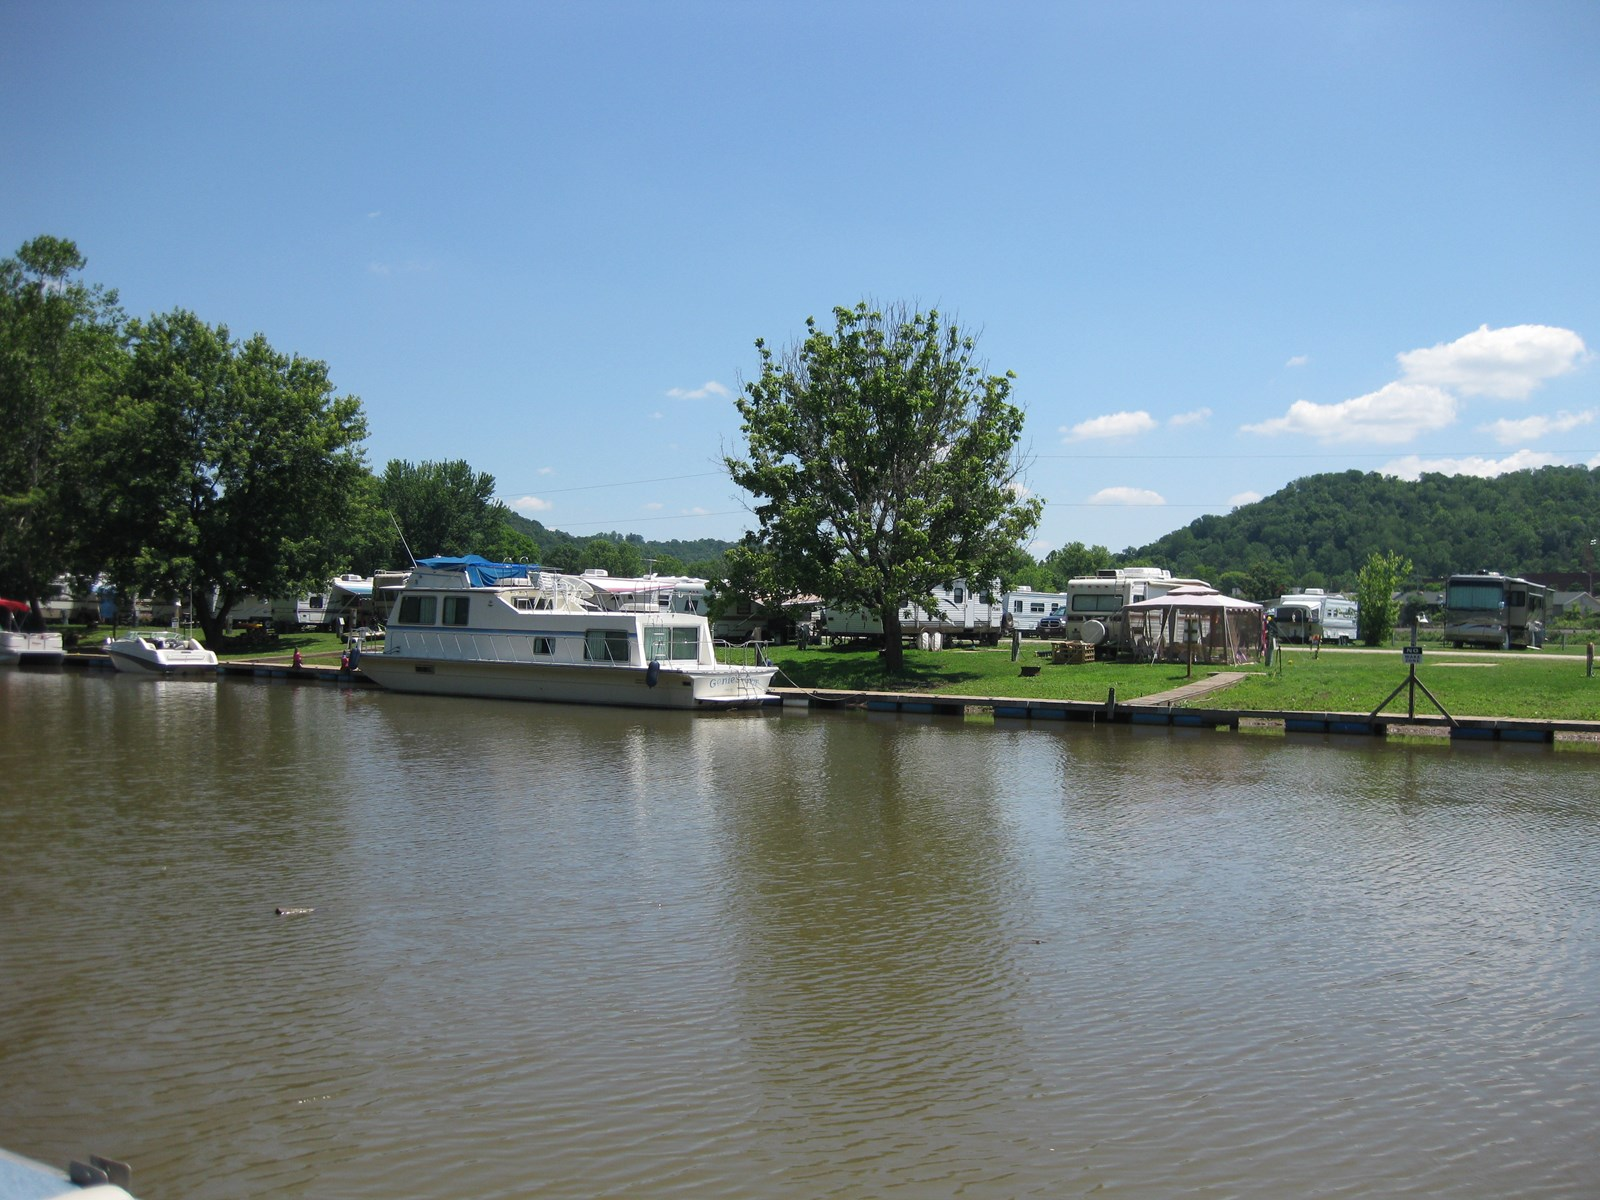 WATERFRONT RV CAMPGROUND IN ST. MARY'S, WV